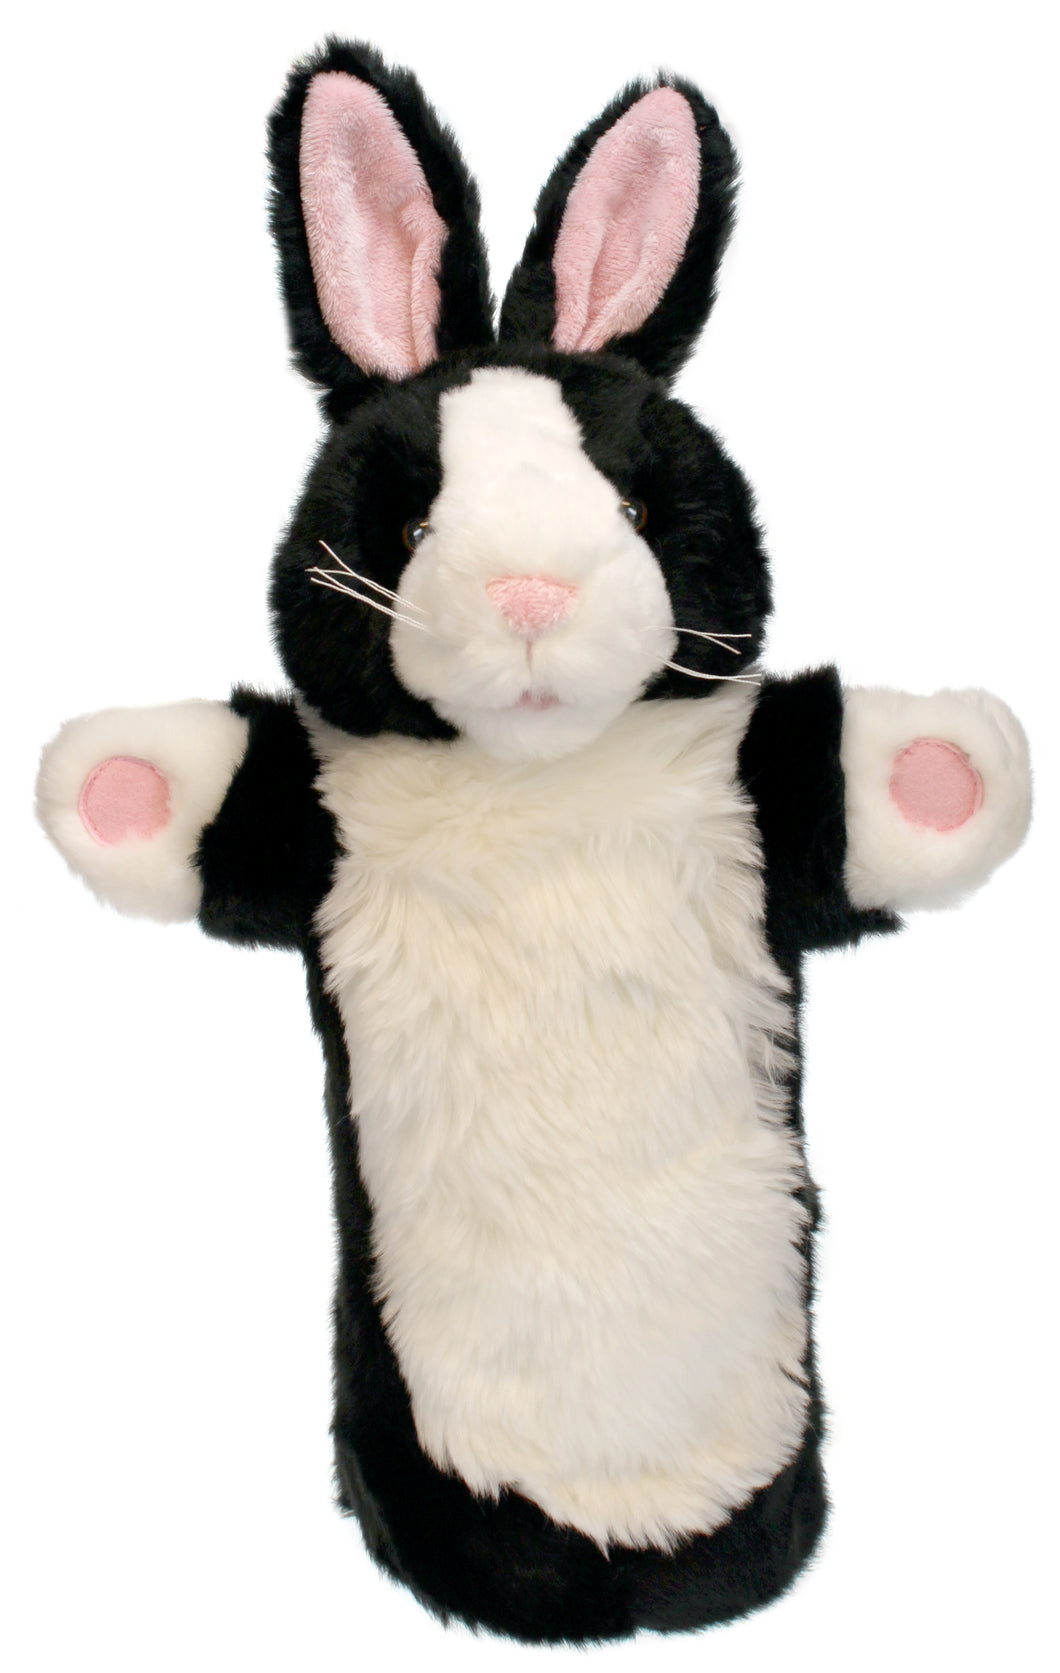 P382-PC006004-marionnette-Lapin-noir-et-blanc-The-Puppet-Company-Long-Sleeved-Glove-Puppets